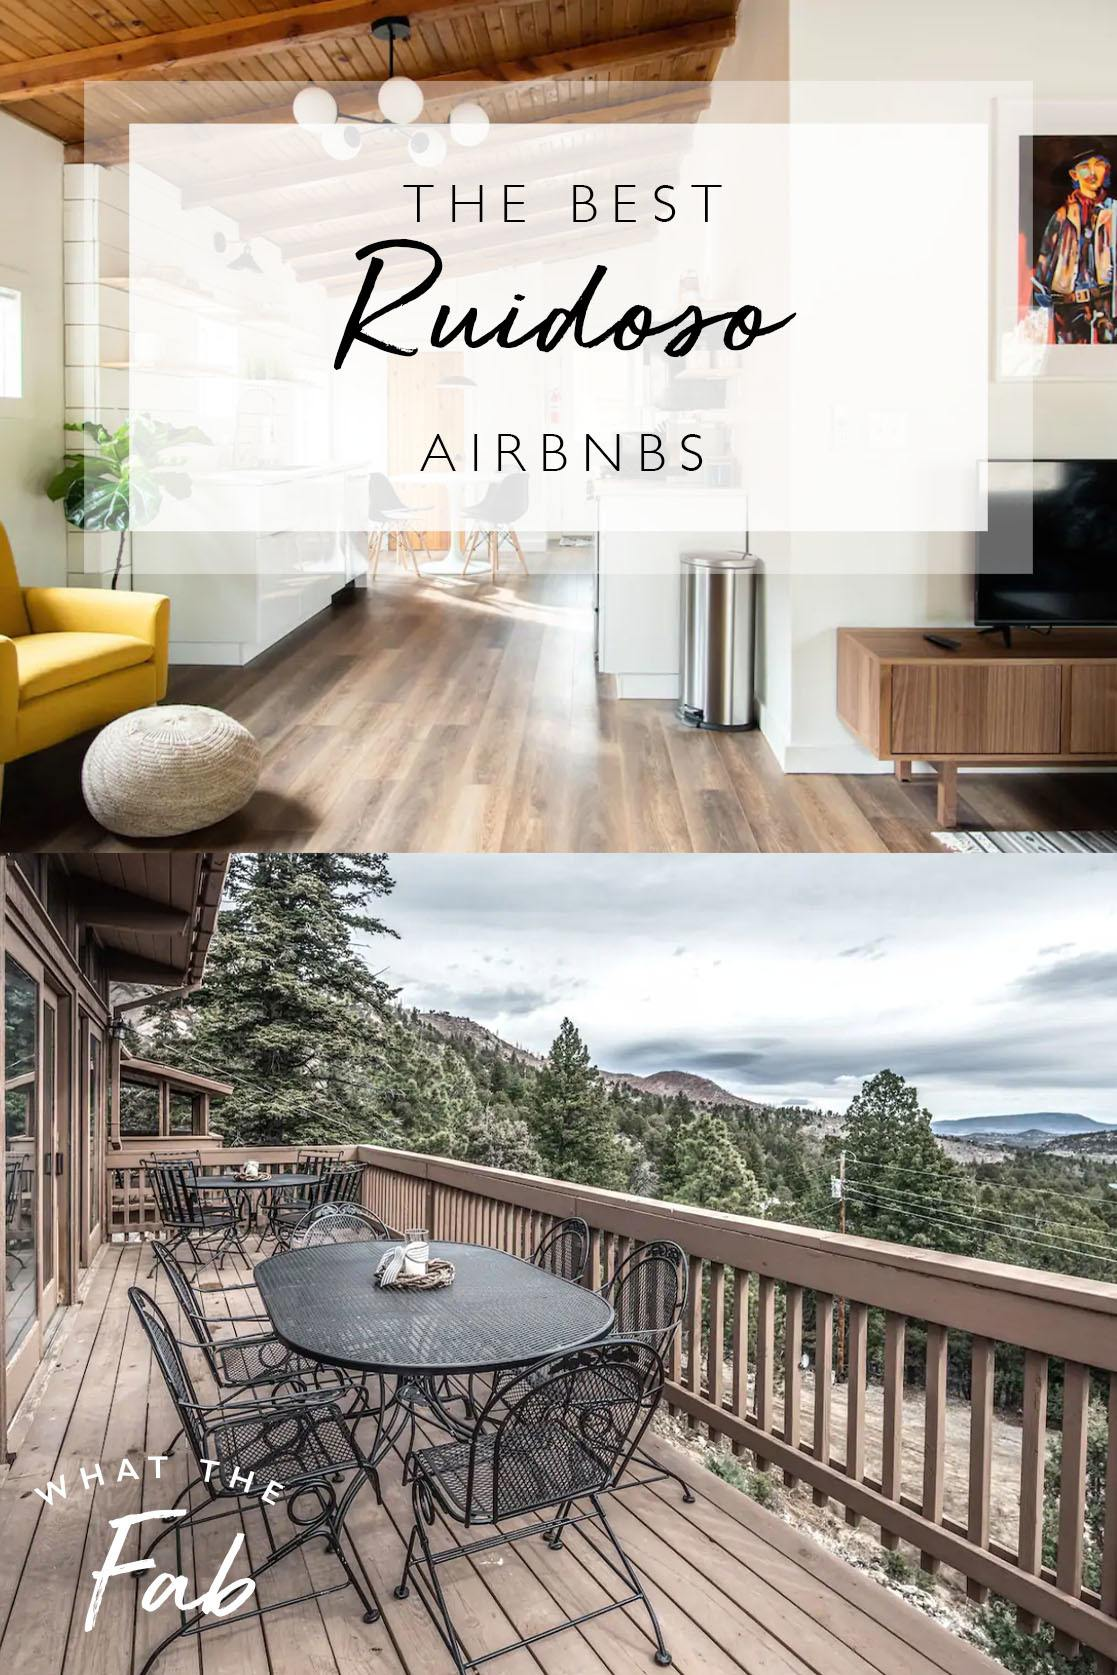 Airbnb Ruidoso guide, by Travel Blogger What The Fab